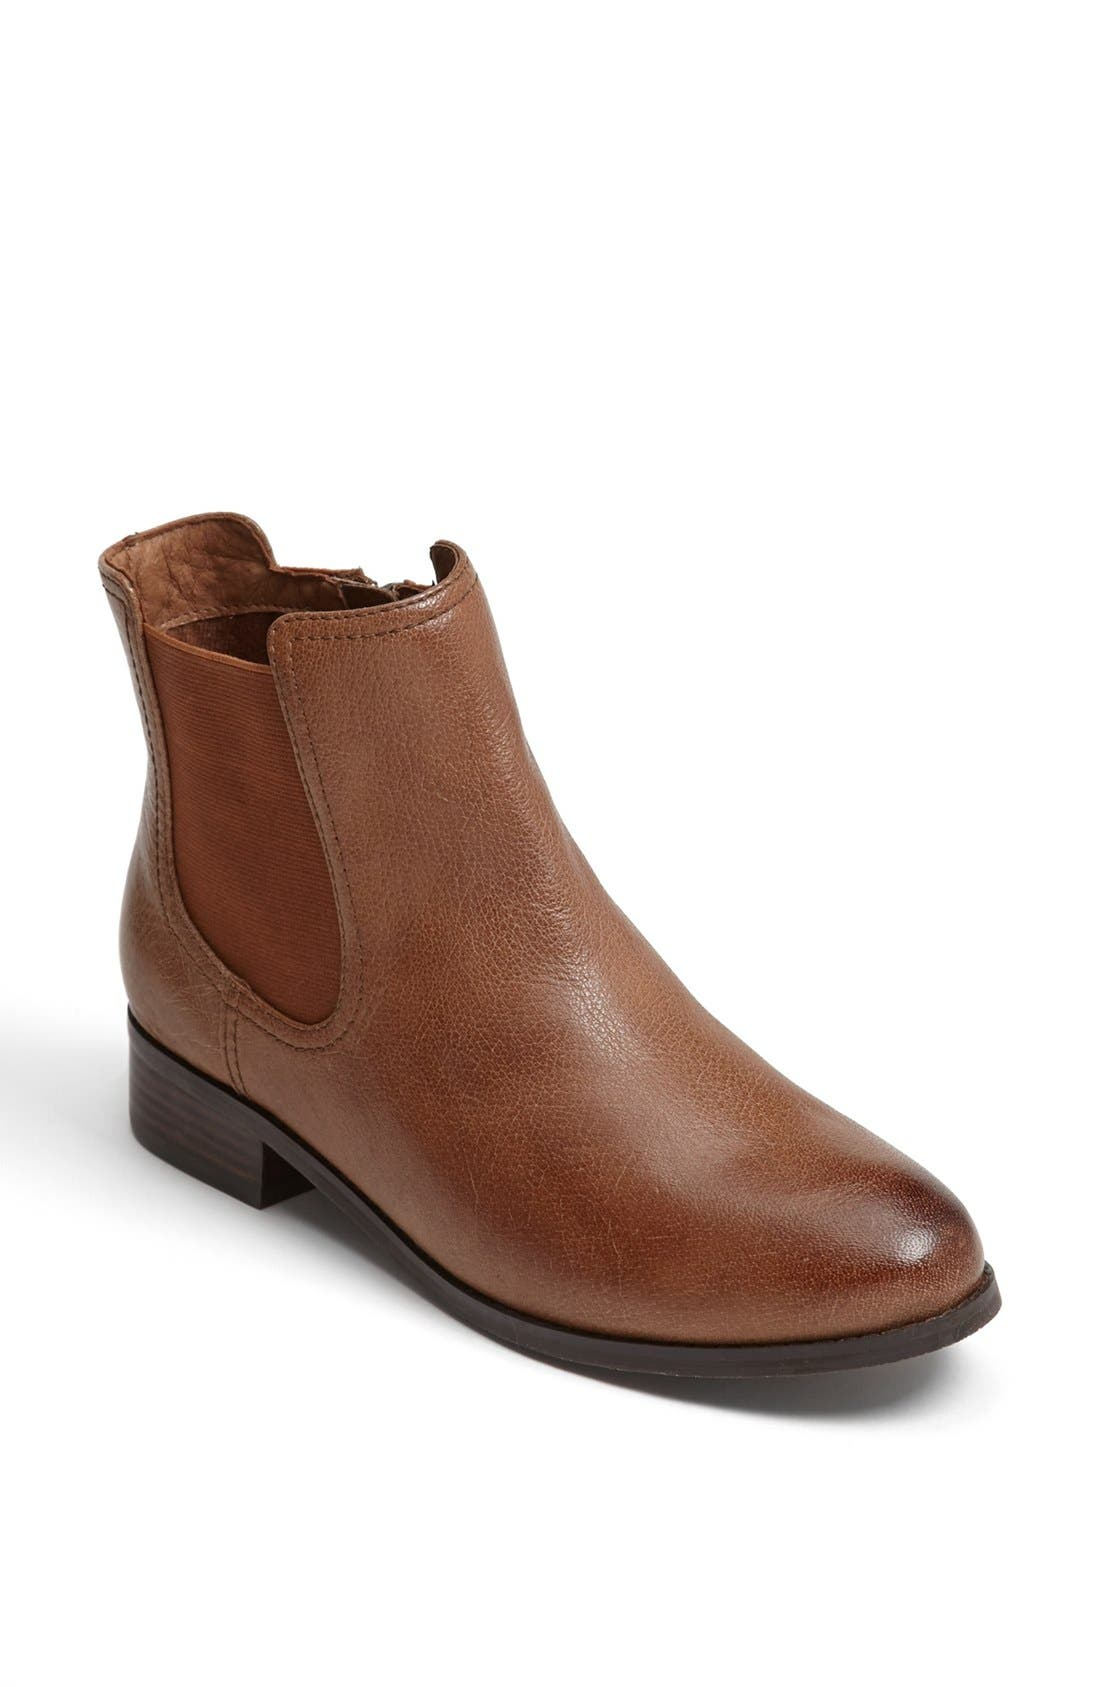 Main Image - Trotters 'Leah' Boot